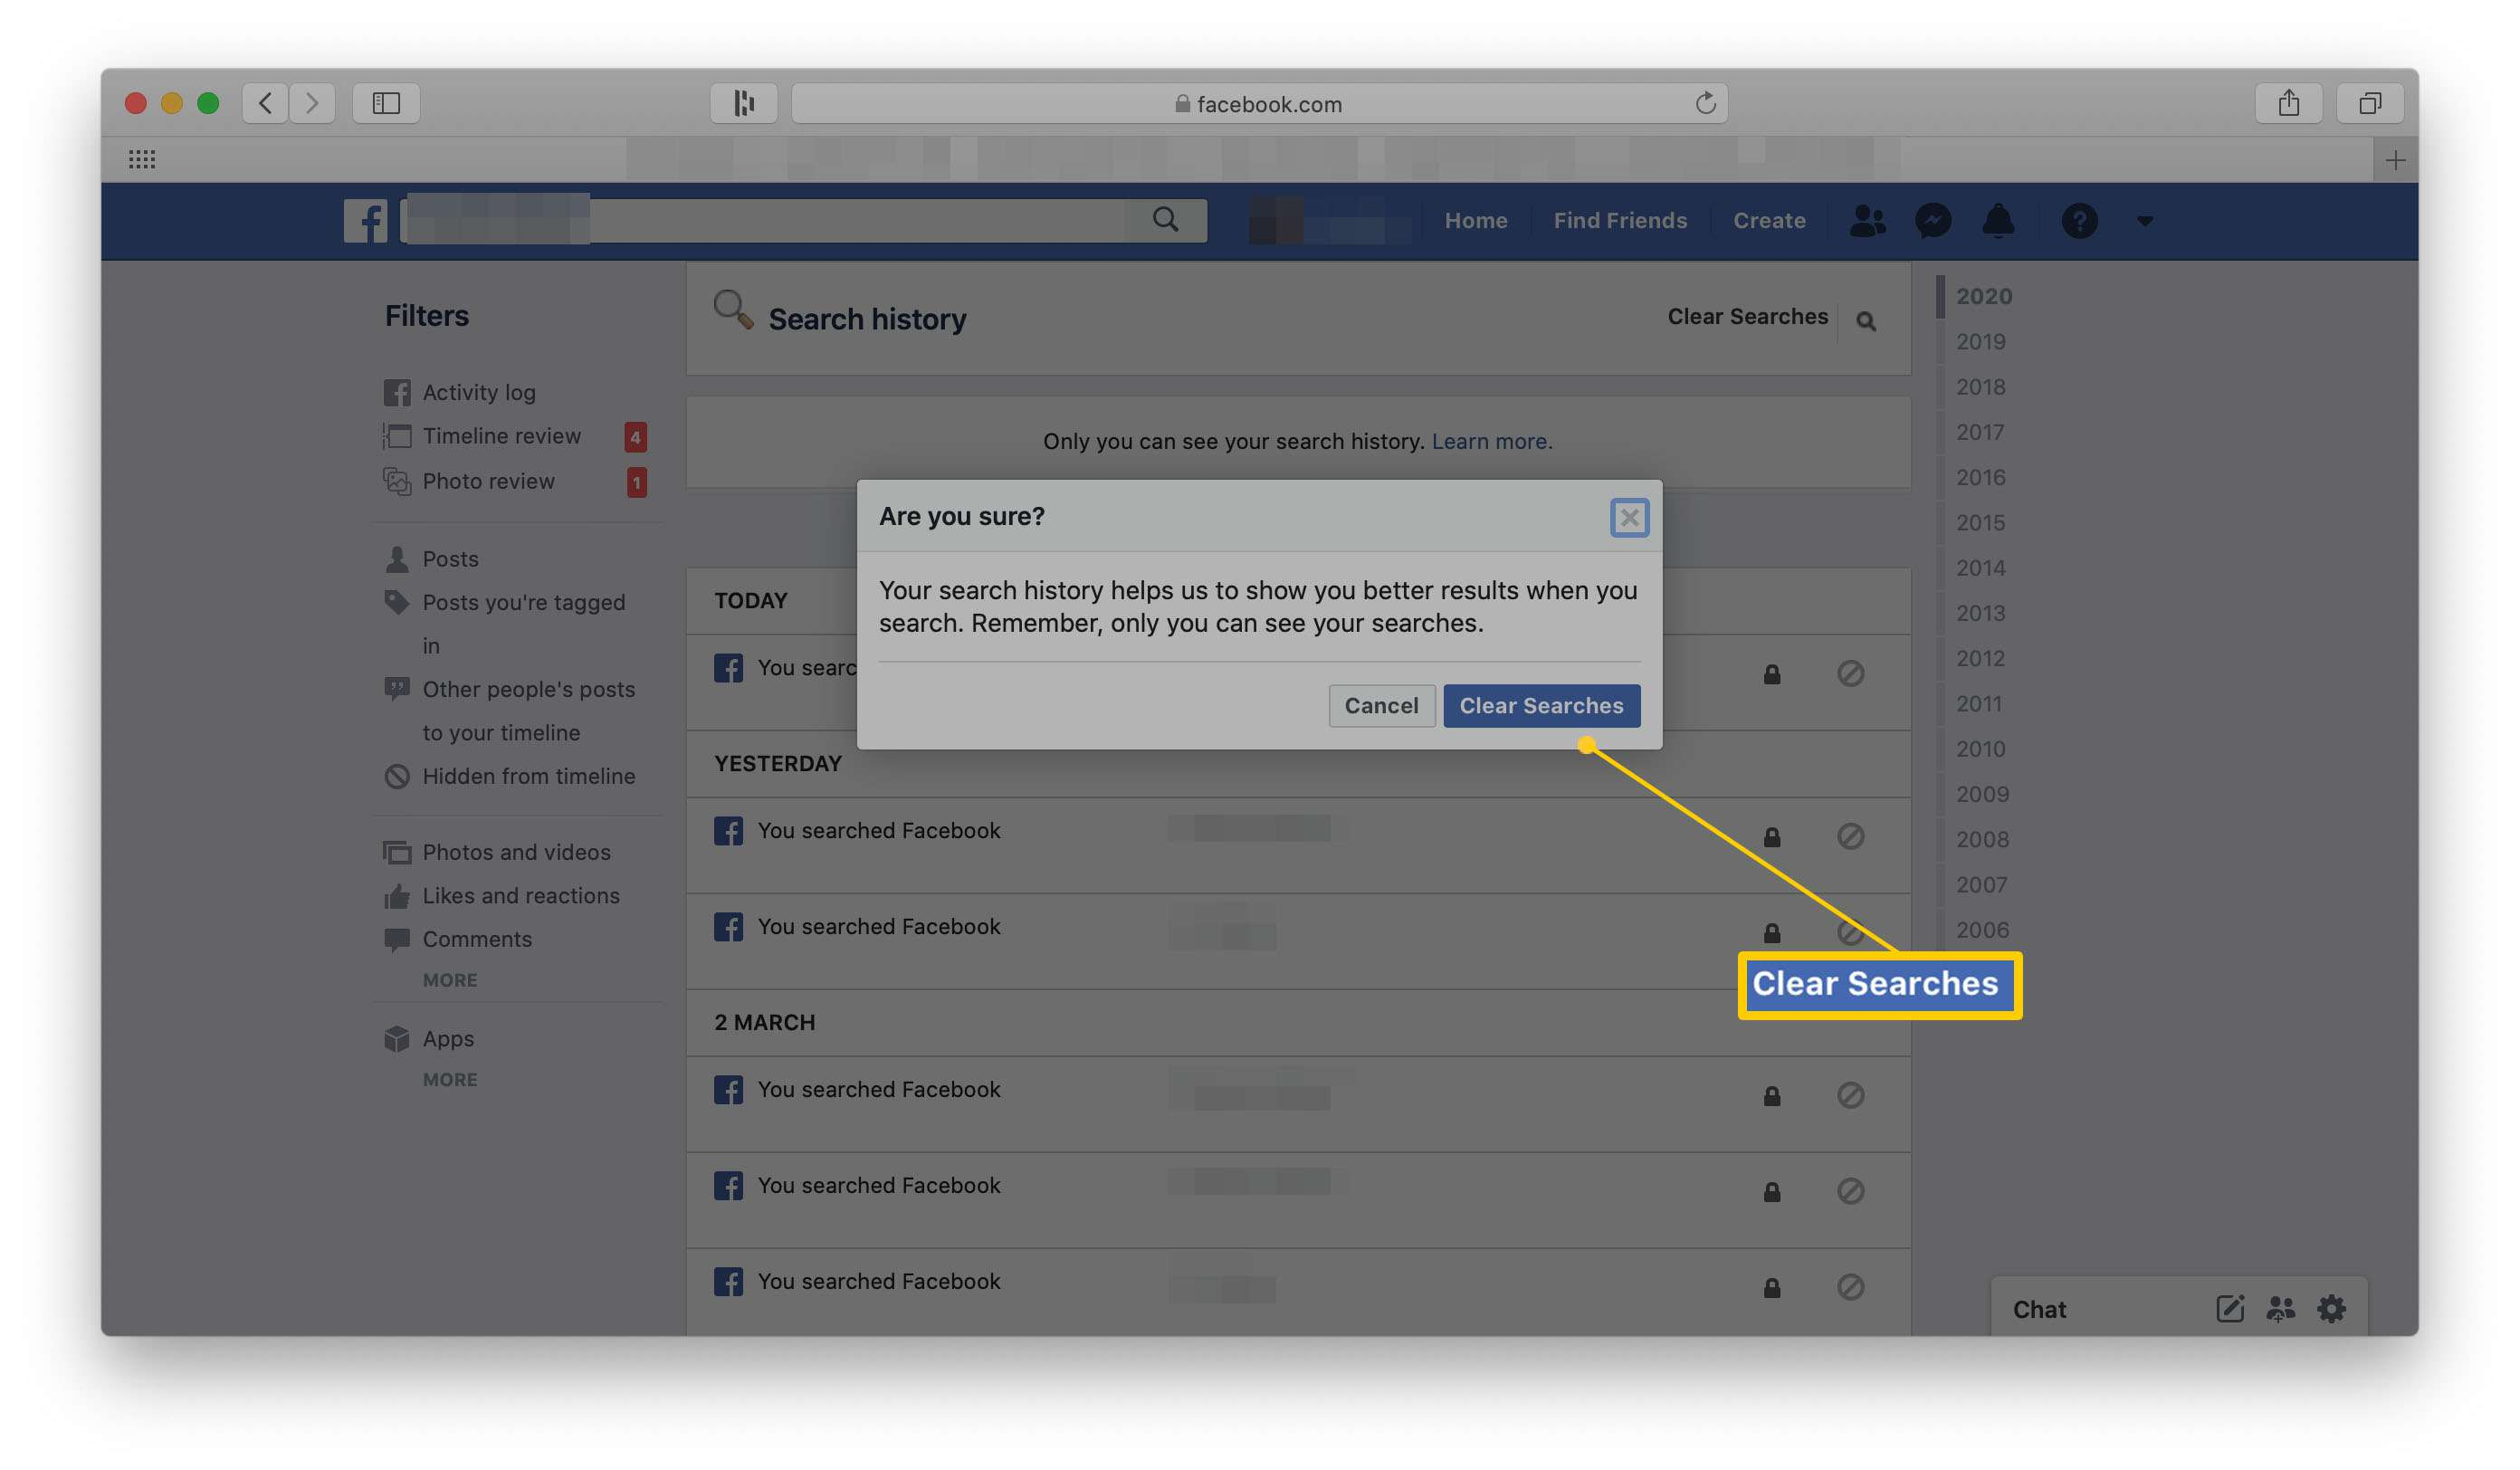 Facebook search history with clear searches highlighted